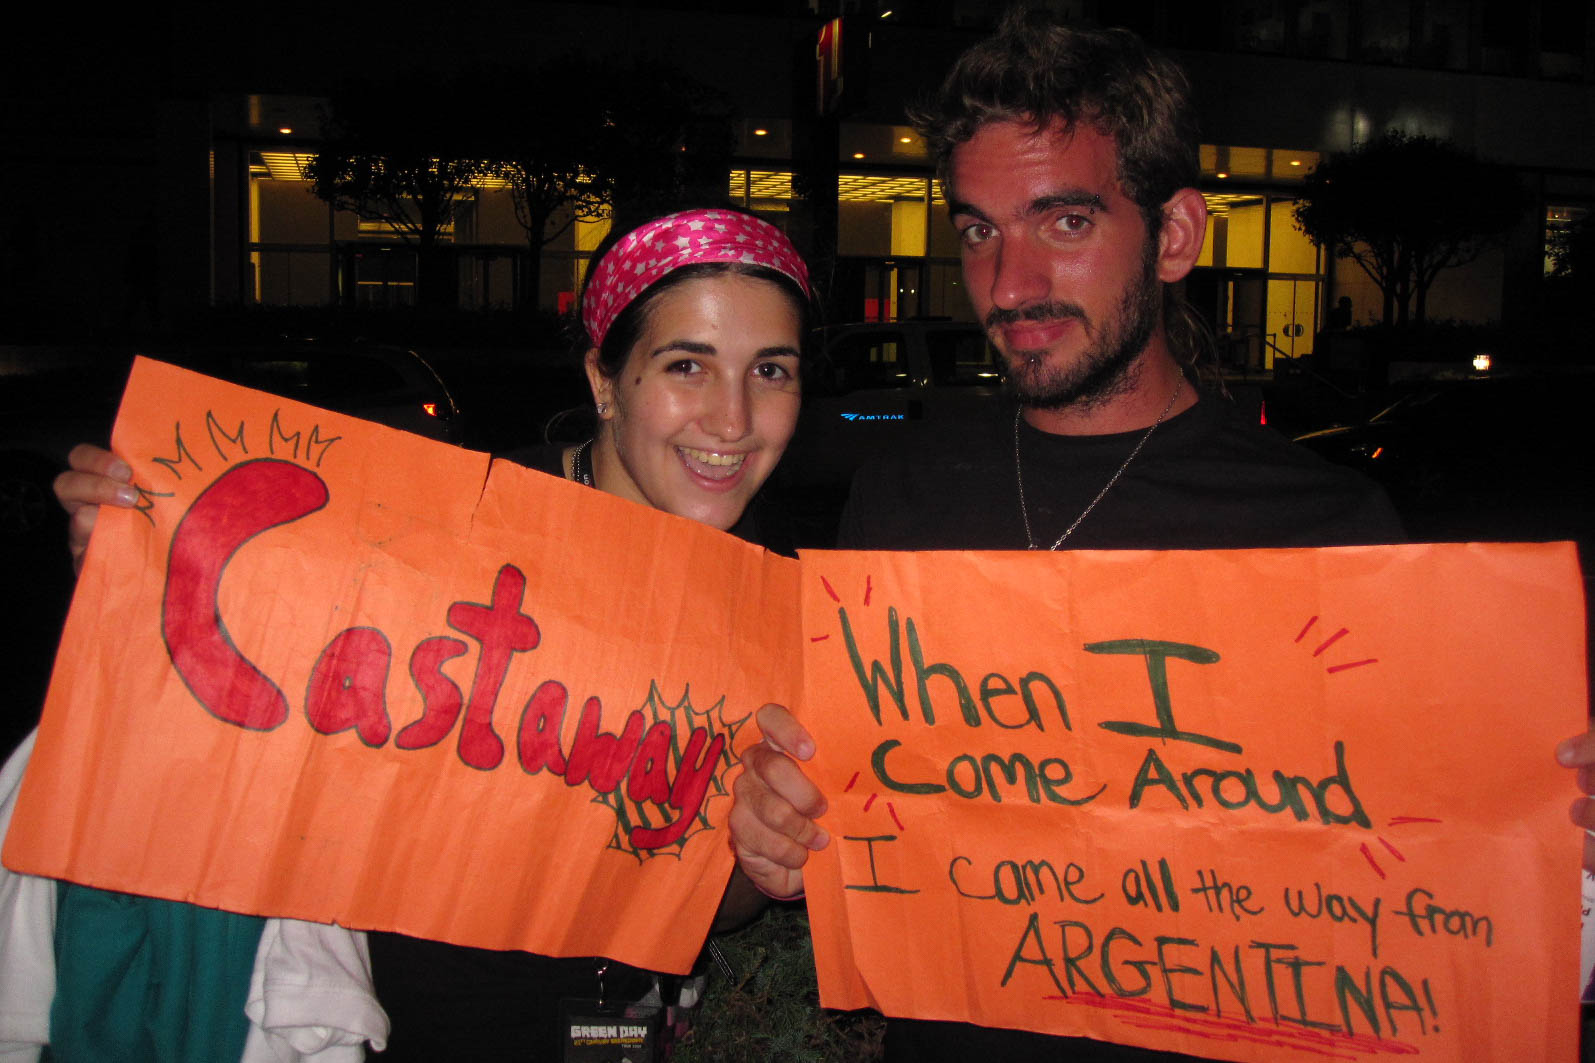 After the Green Day show in NYC in 2009. Yes, they played both of our songs (I made both signs).